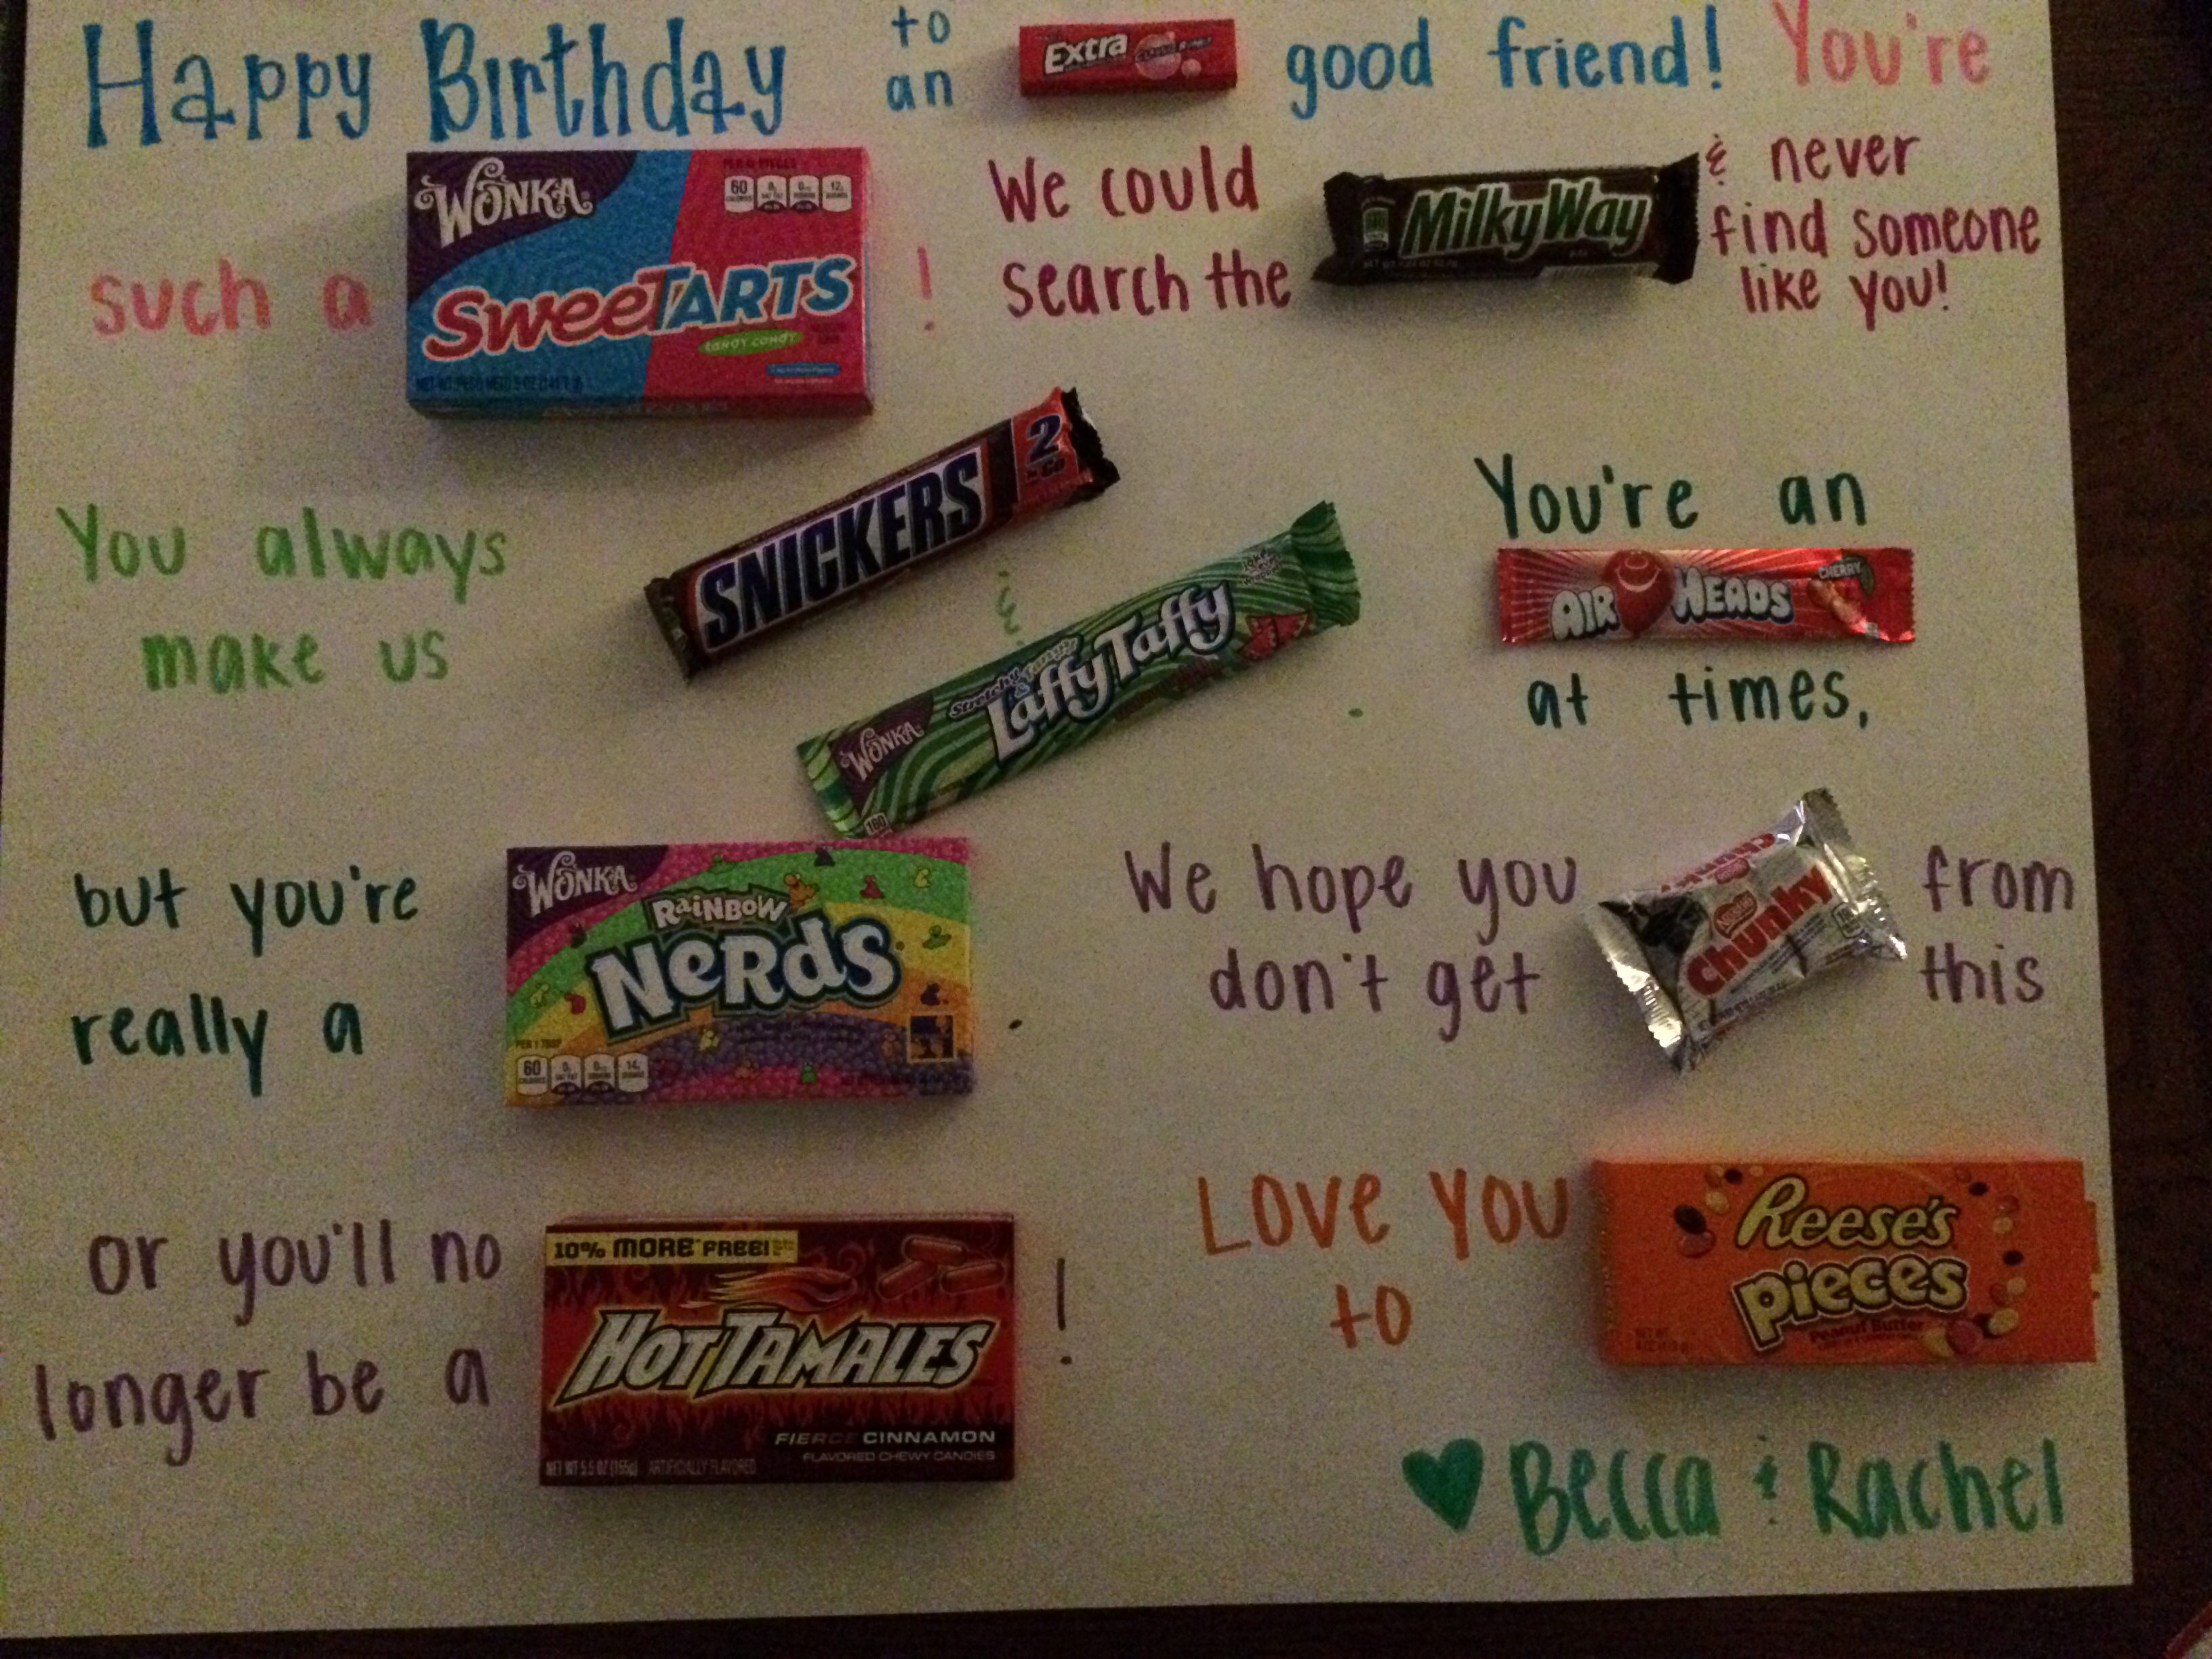 birthday poster with candy ; birthday-candy-poster-6a31a3027a974008bf9cb7bd1495e9cc